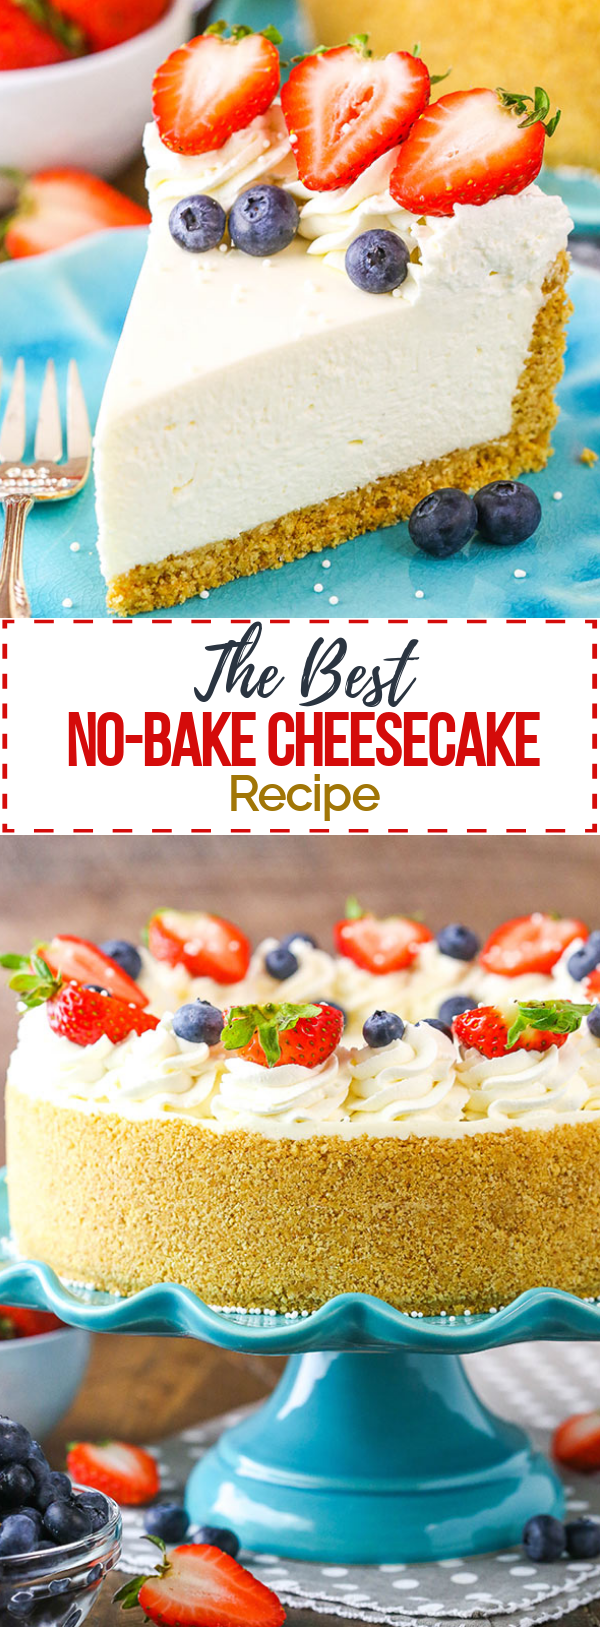 The Perfect No Bake Cheesecake Recipe No Fuss Easy Cheesecake Recipe Best No Bake Cheesecake Easy Cheesecake Cheesecake Recipes